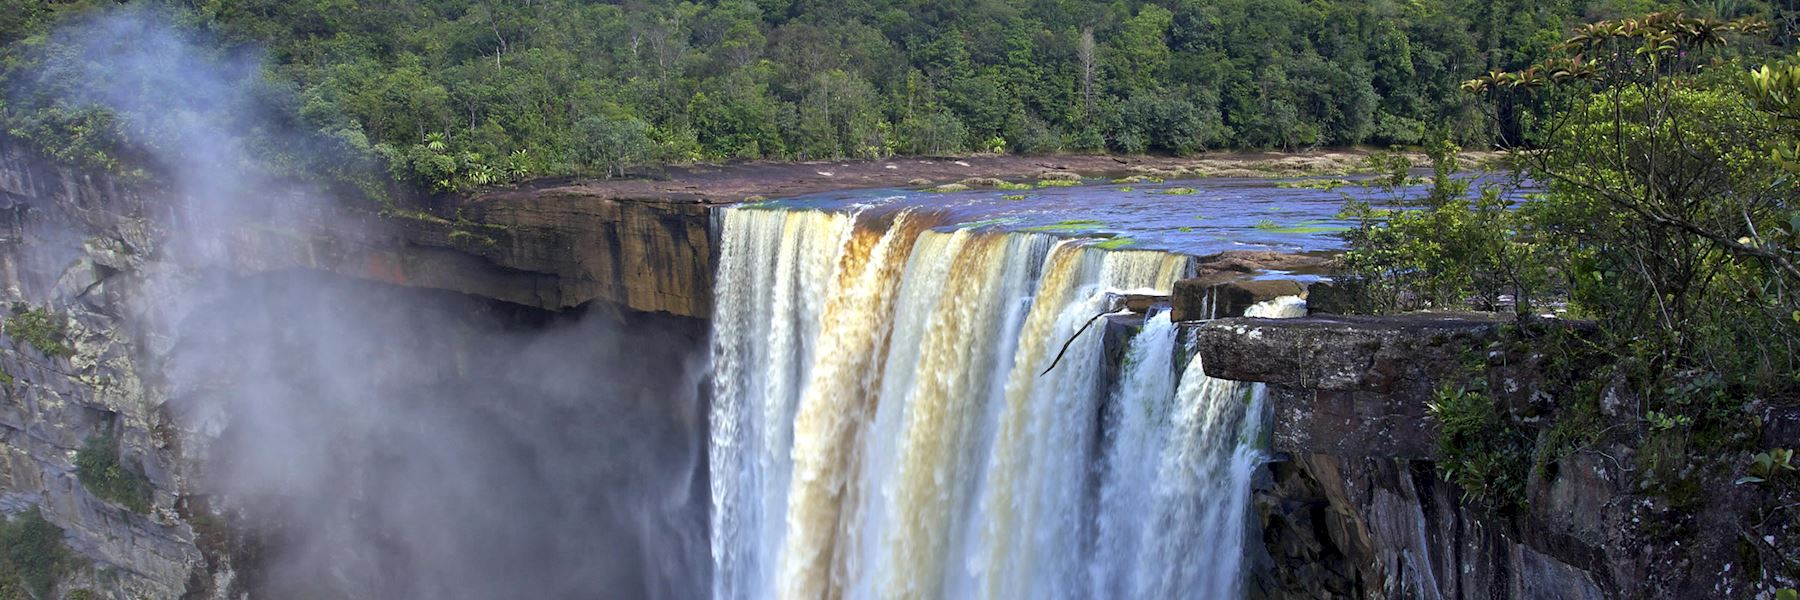 Places to visit in Guyana